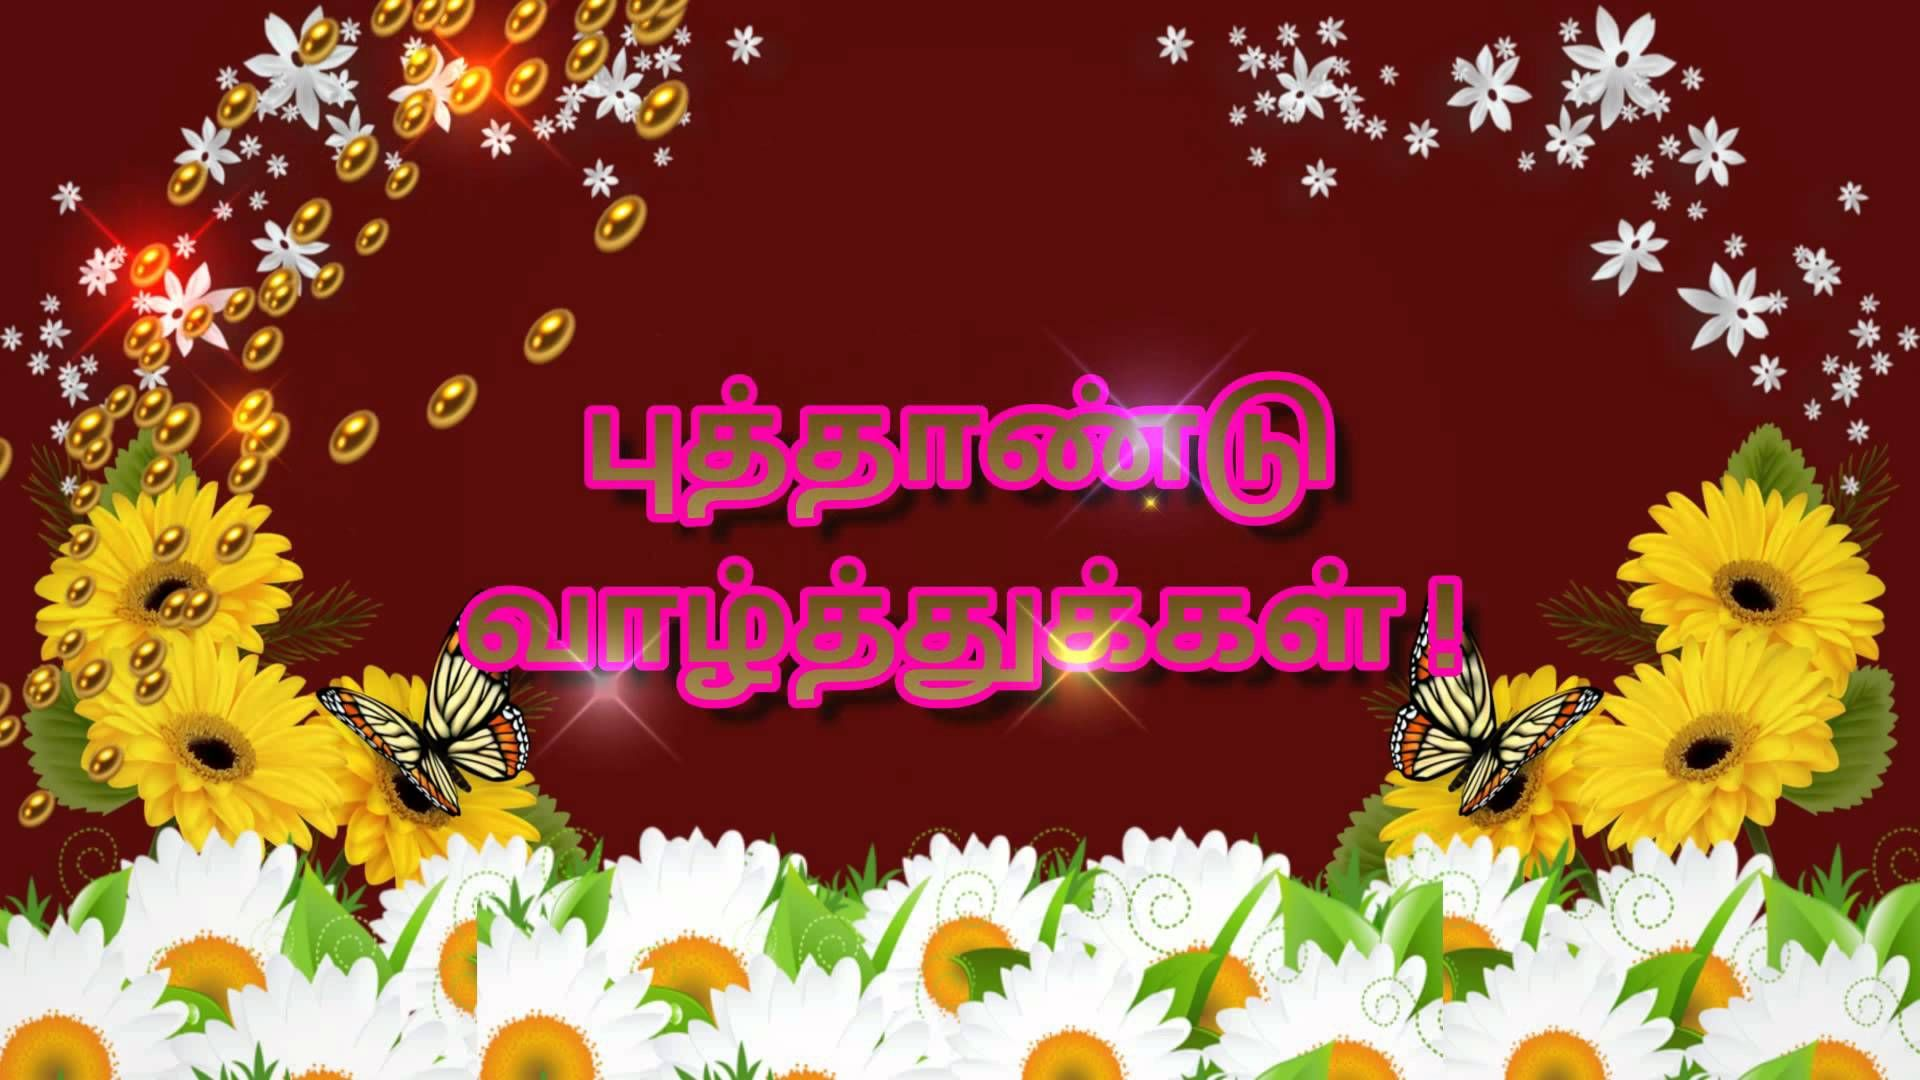 Happy Puthandu 2016 Tamil New Year Wishes Puthandu Greetings